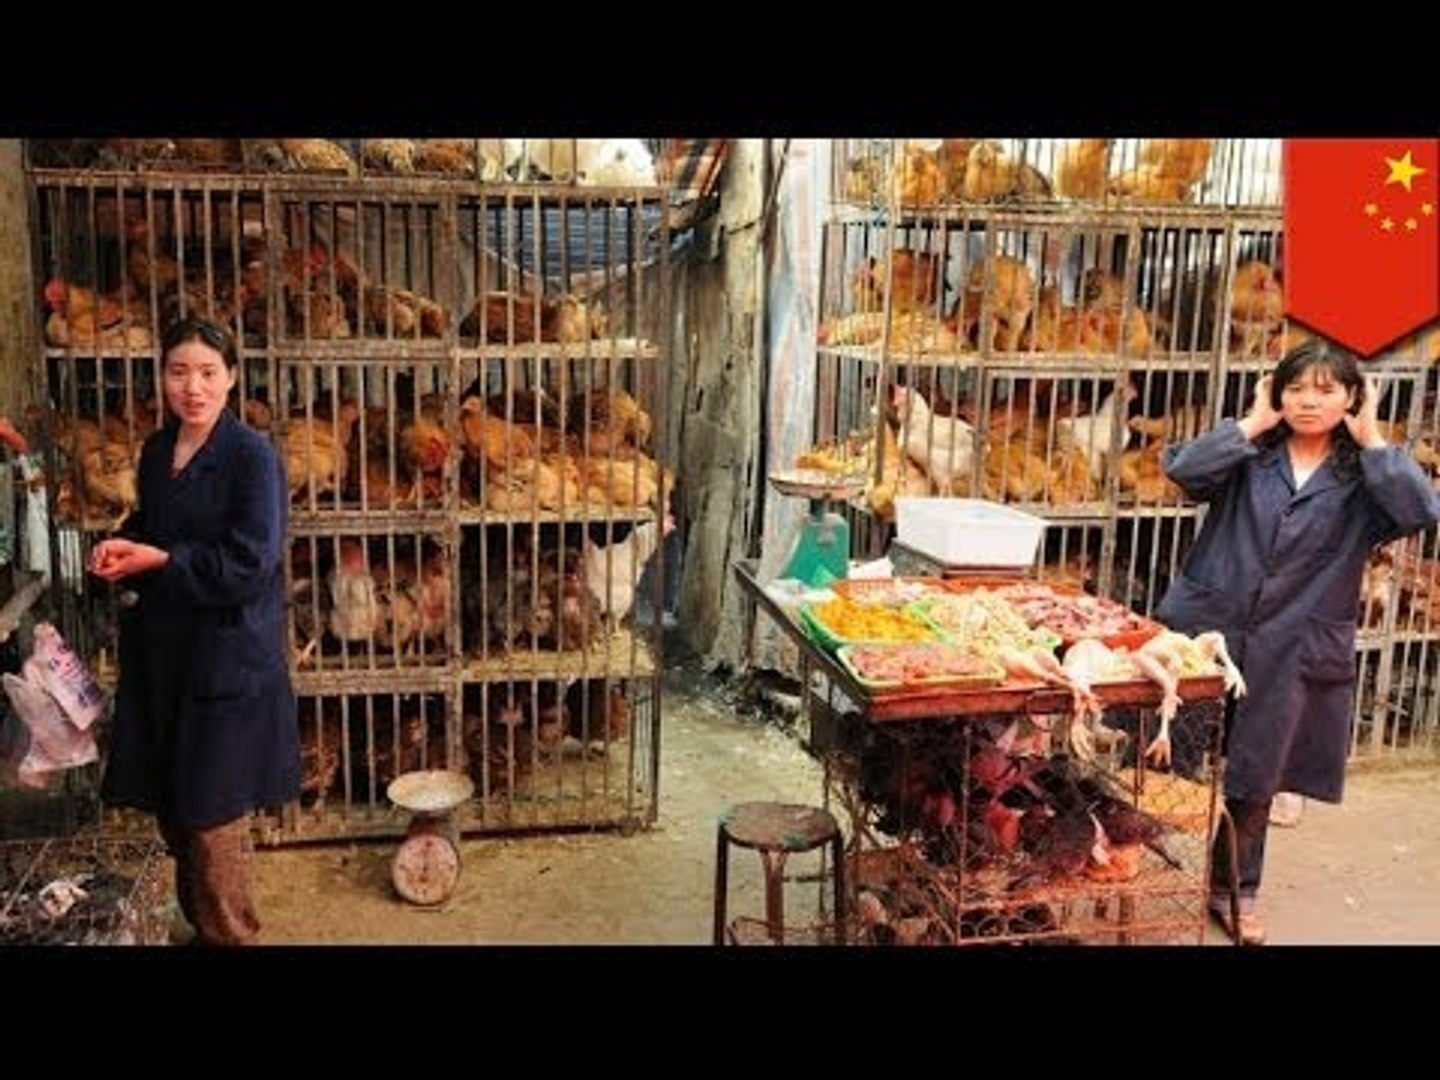 H10N8 bird flu virus: Chinese scientists decipher genetic composition of new strain